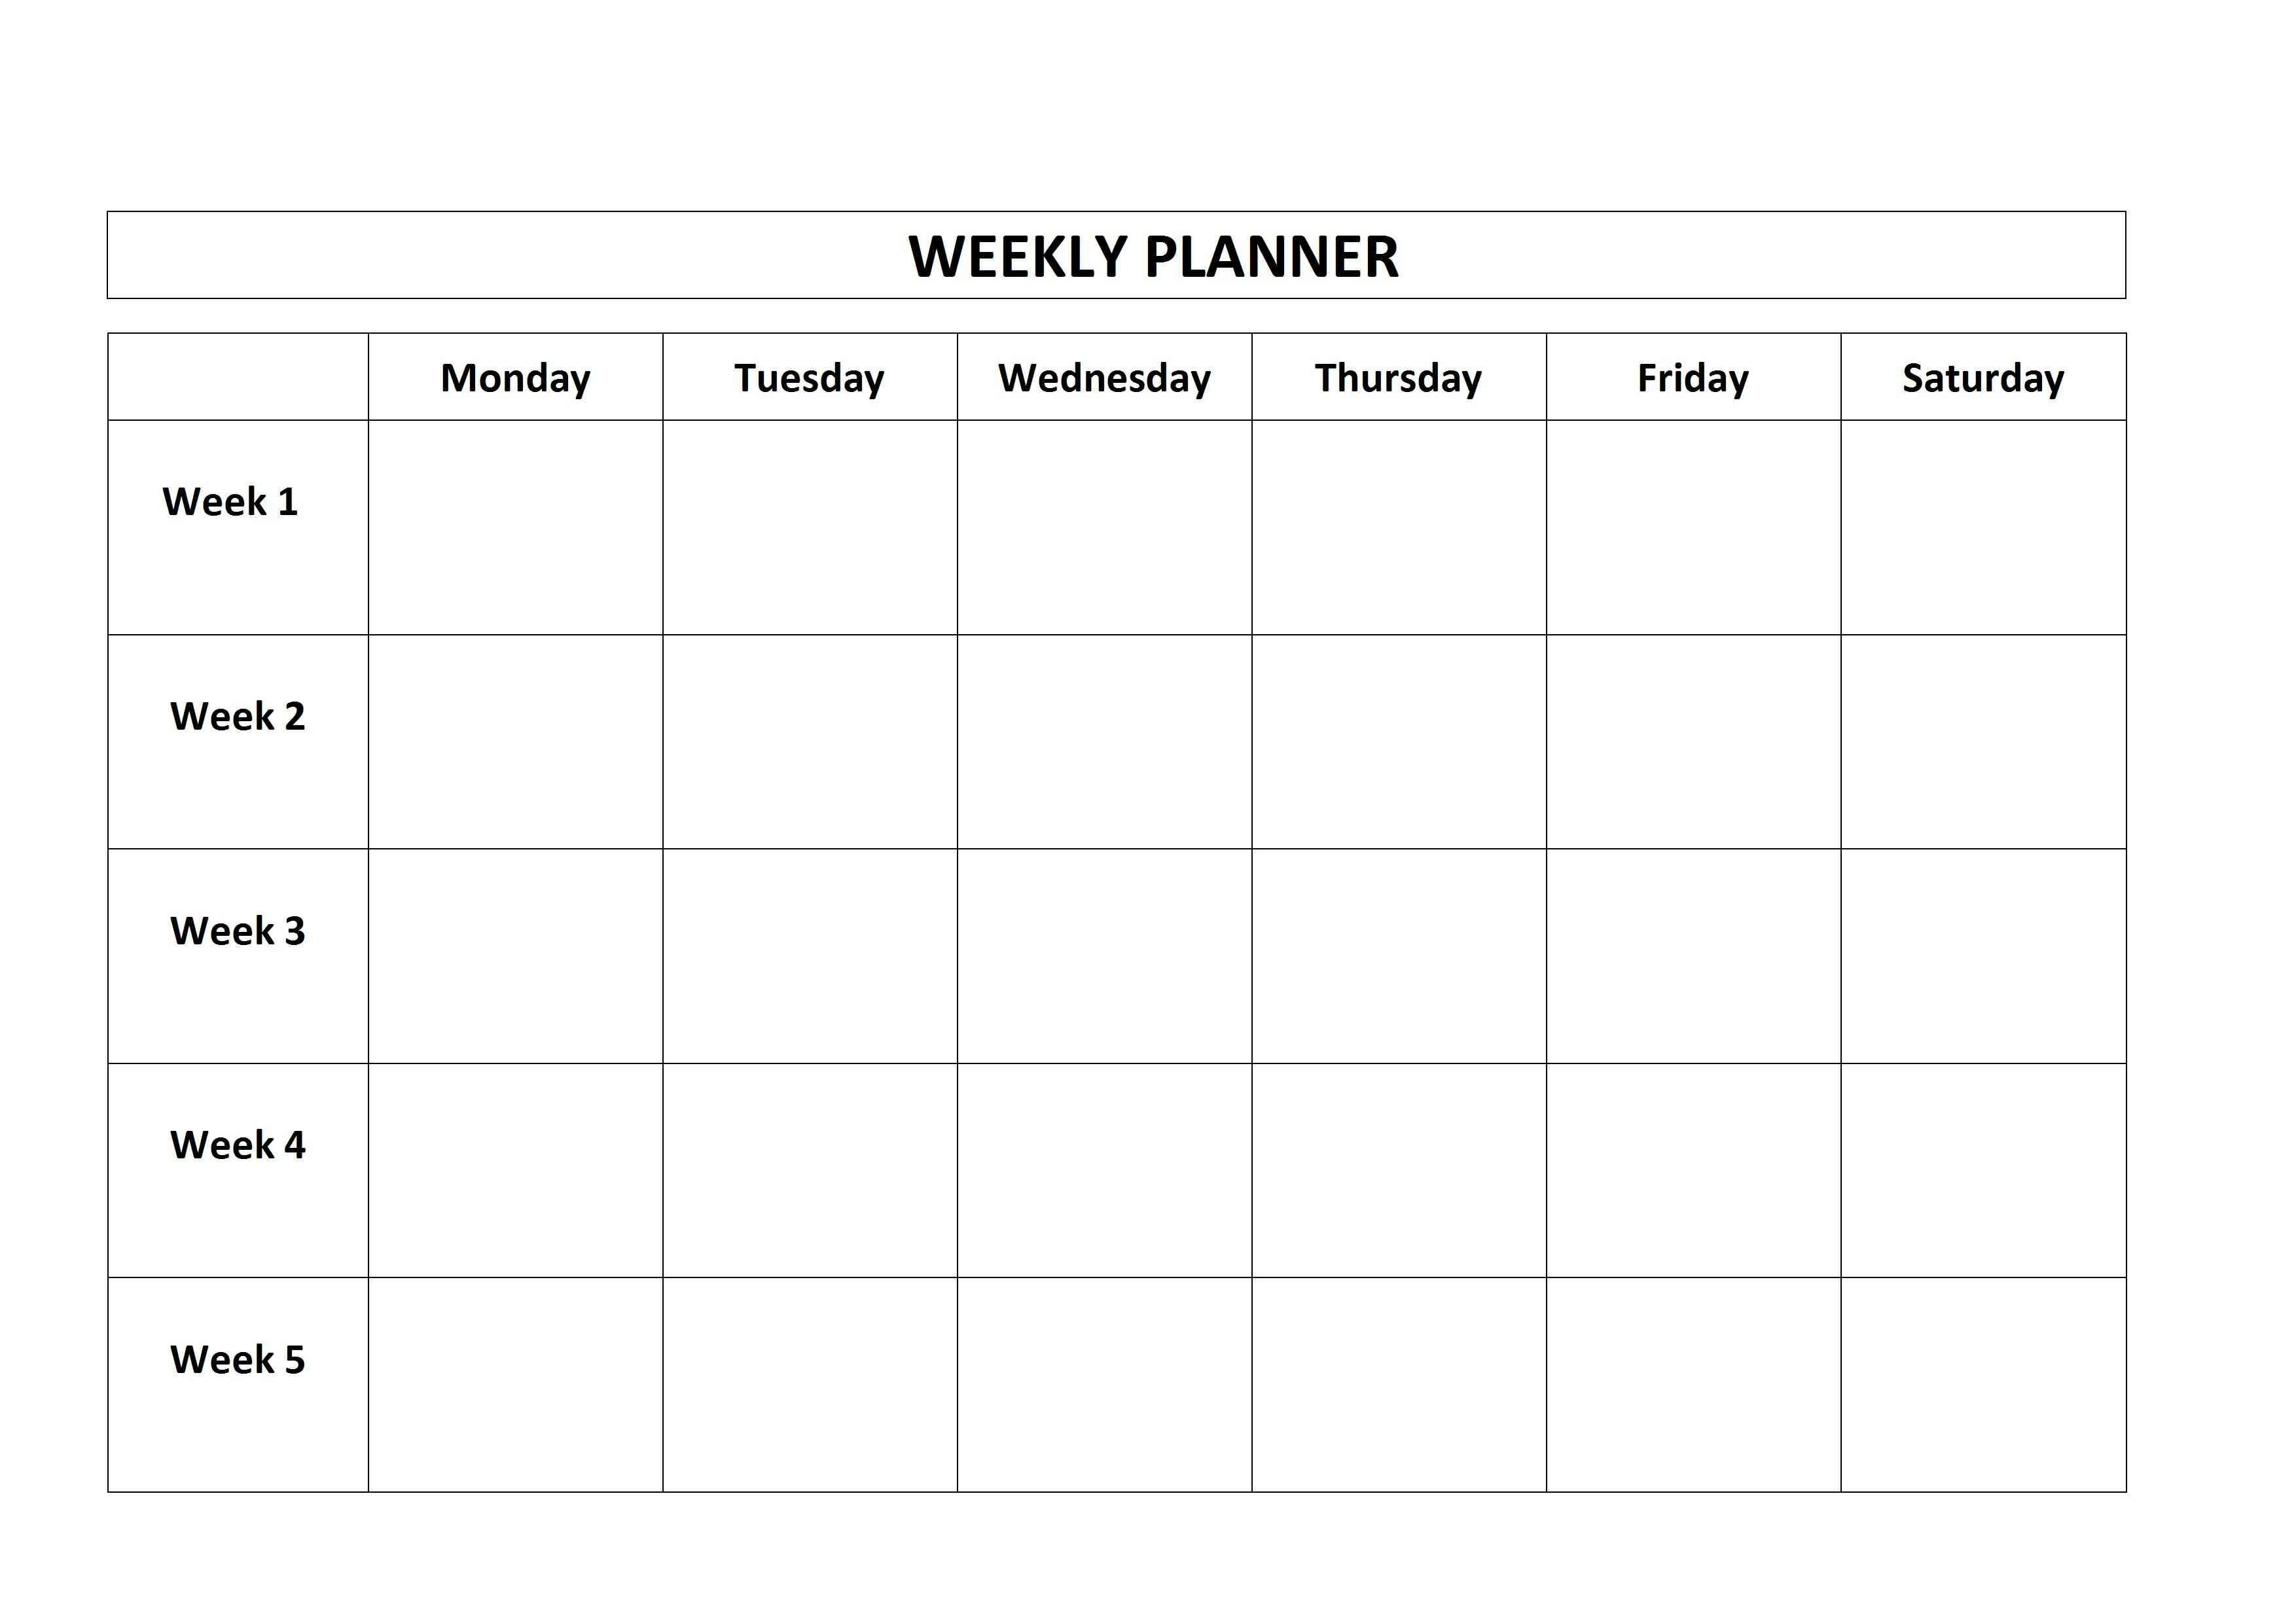 Monday To Friday Planner Template | Calendar For Planning Weekly Planner Template Monday Thru Friday